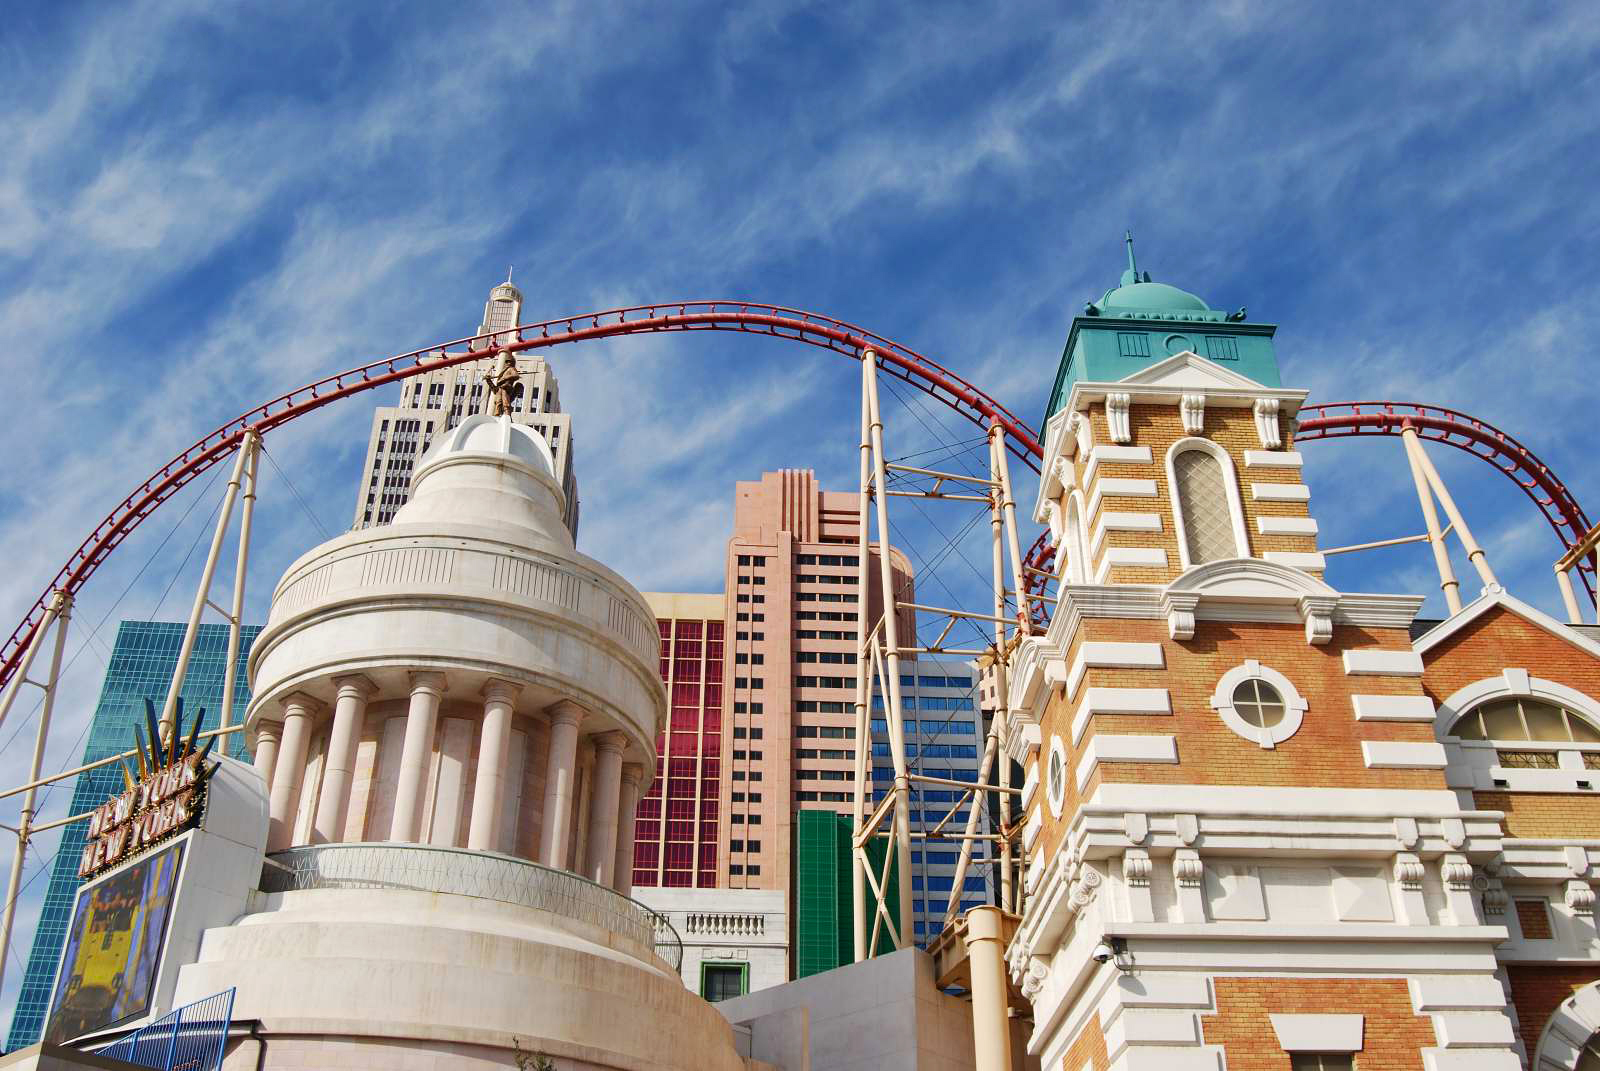 Roller coaster at Las Vegas - photography by Jenny SW Lee